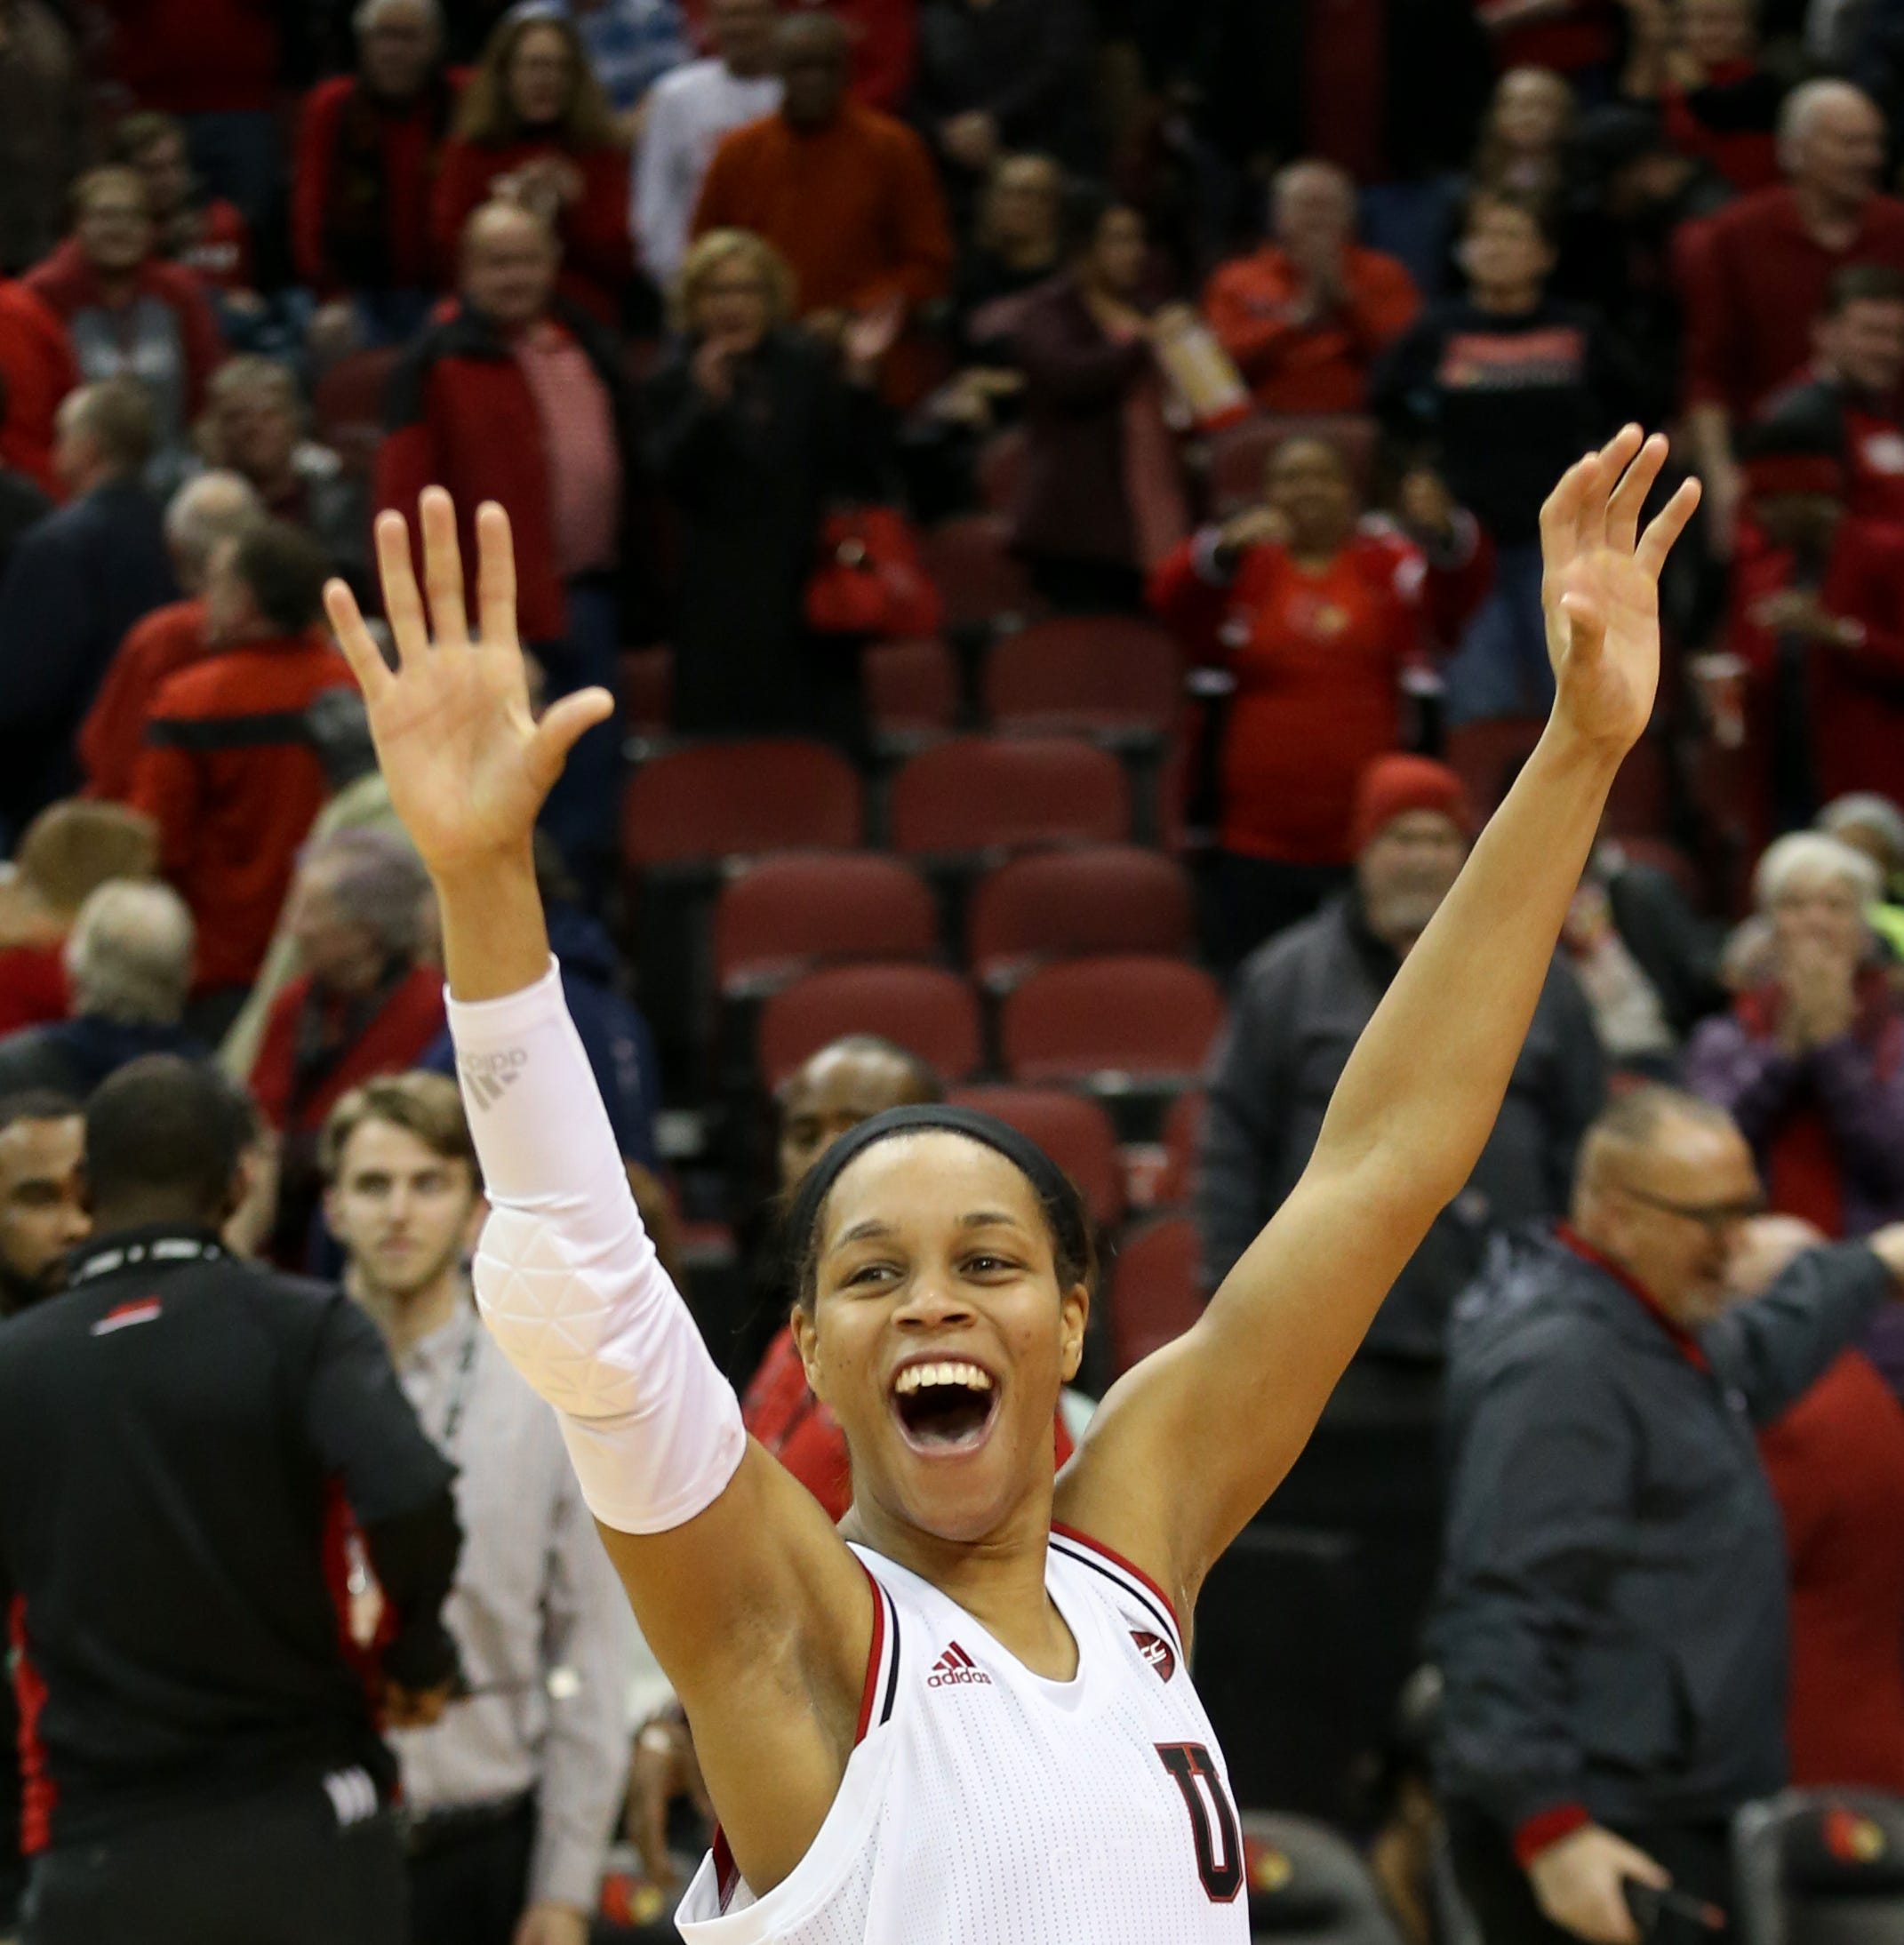 Why Louisville women's basketball brings no profit despite being successful